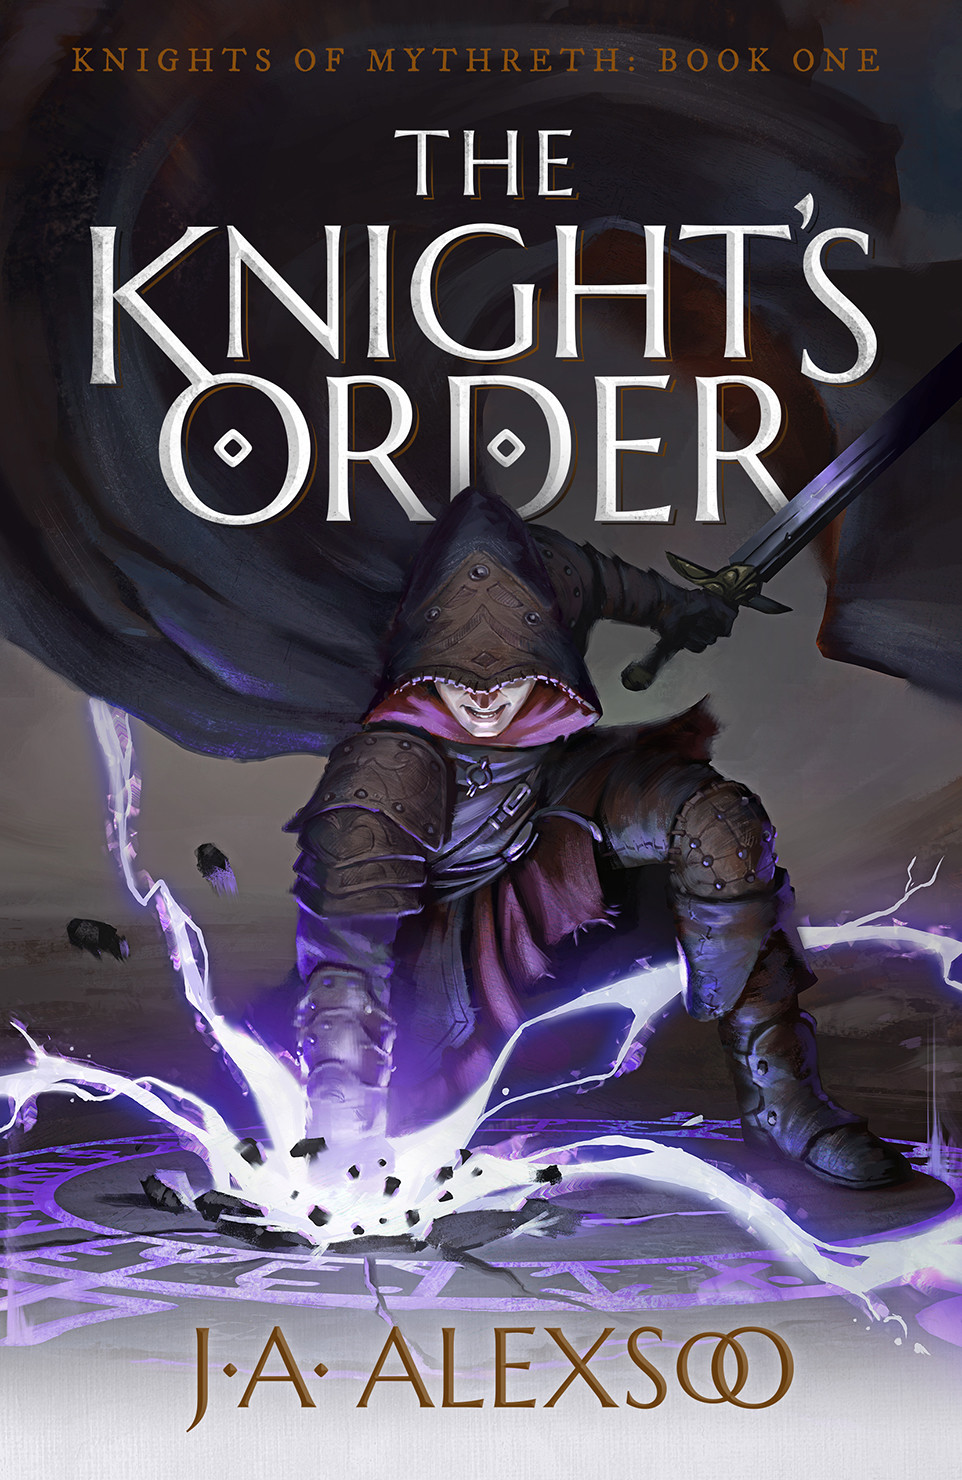 The Knight's Order Cover Art